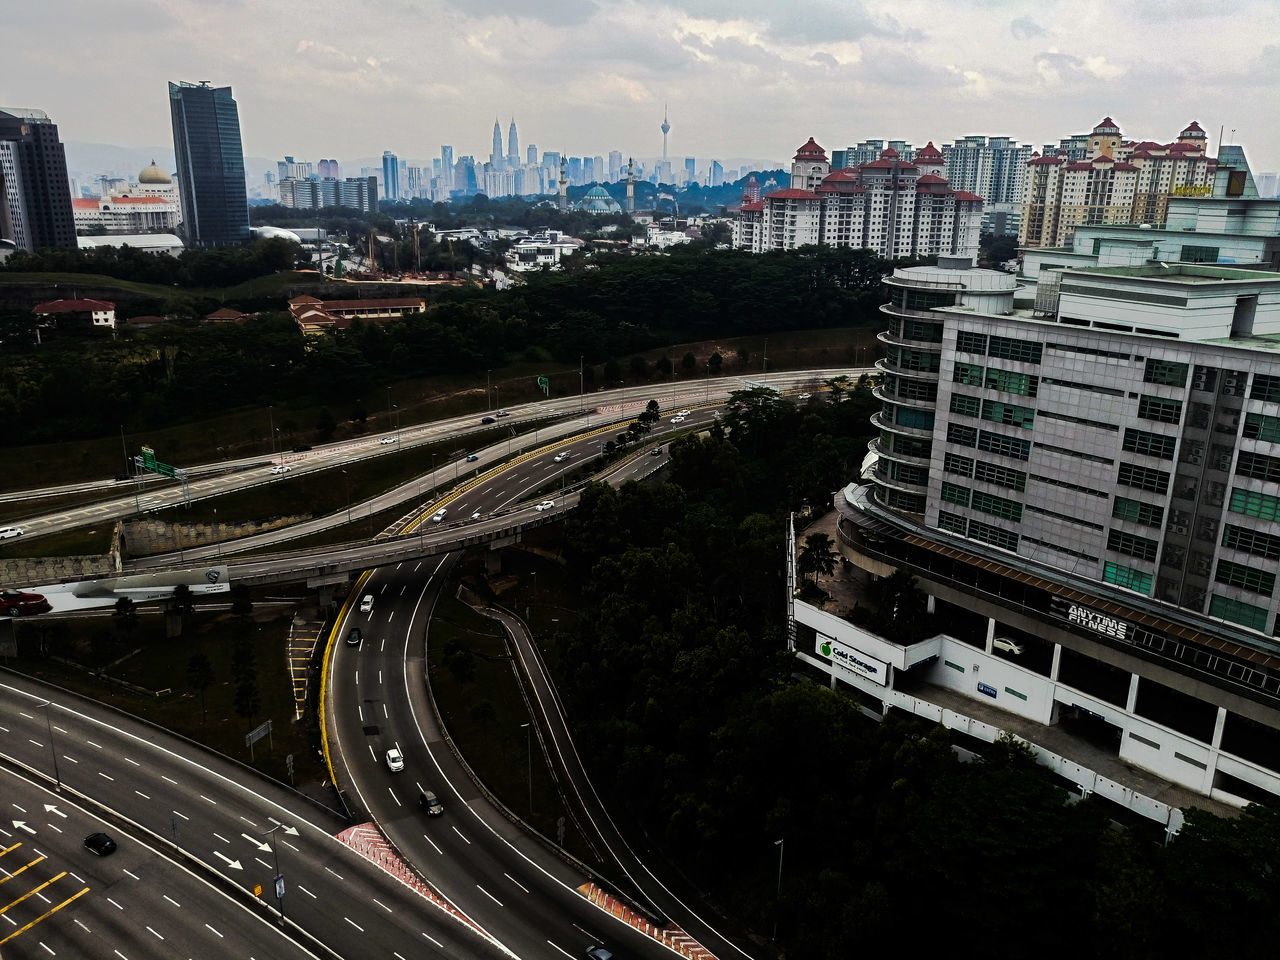 Highway Photography City View  City Street Lonely Street Engineering Highways&Freeways High Angle View Highway_collection Streetphotography Street Life KLCC Twin Towers KLCC Tower KLCC Park Klcity at Kuala Lumpur City Center